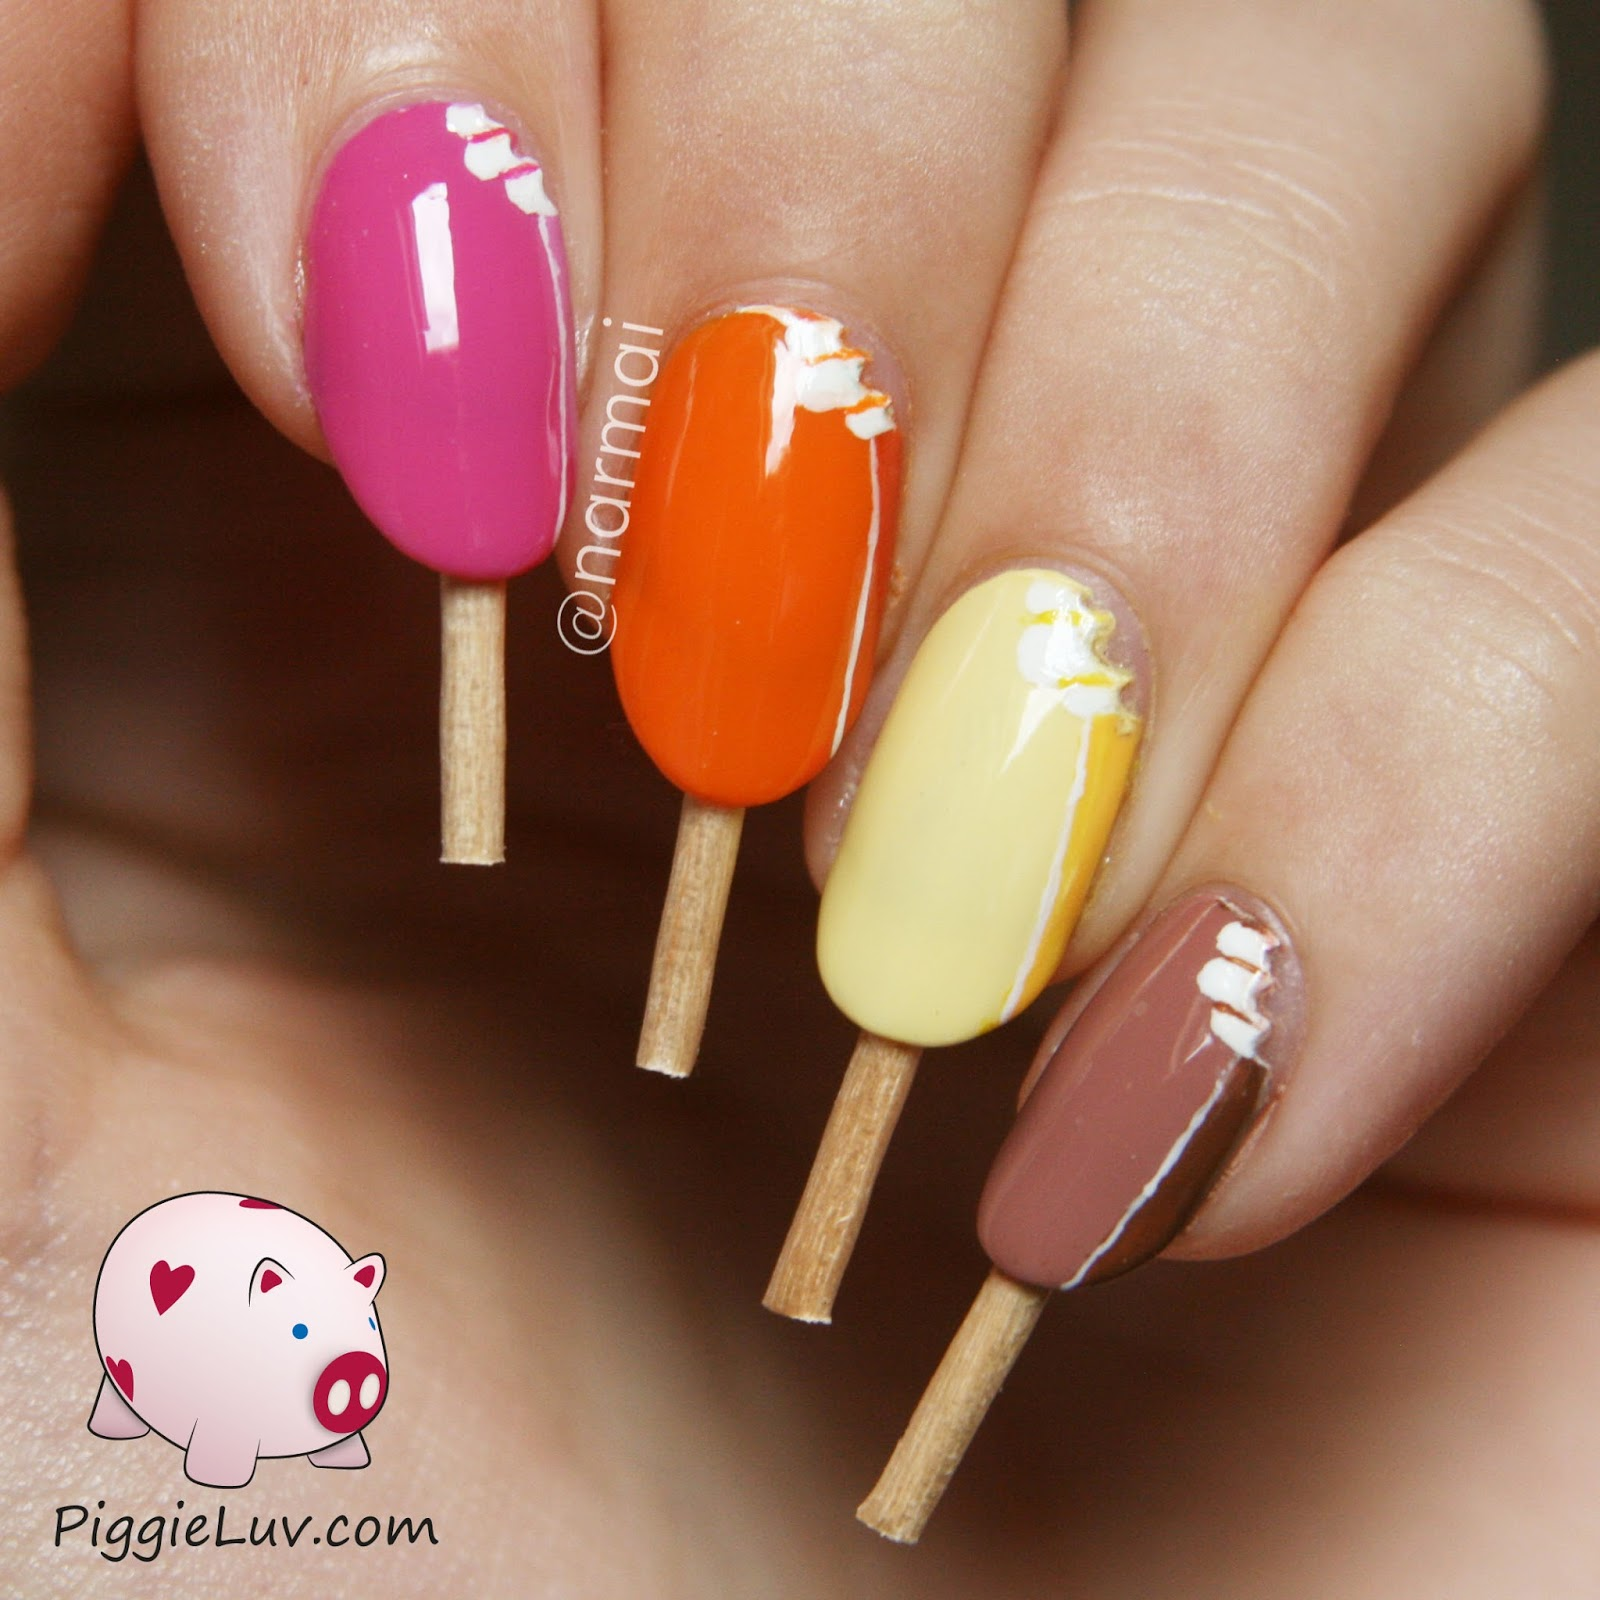 Piggieluv august 2014 magnum ice cream nail art with video tutorial solutioingenieria Choice Image